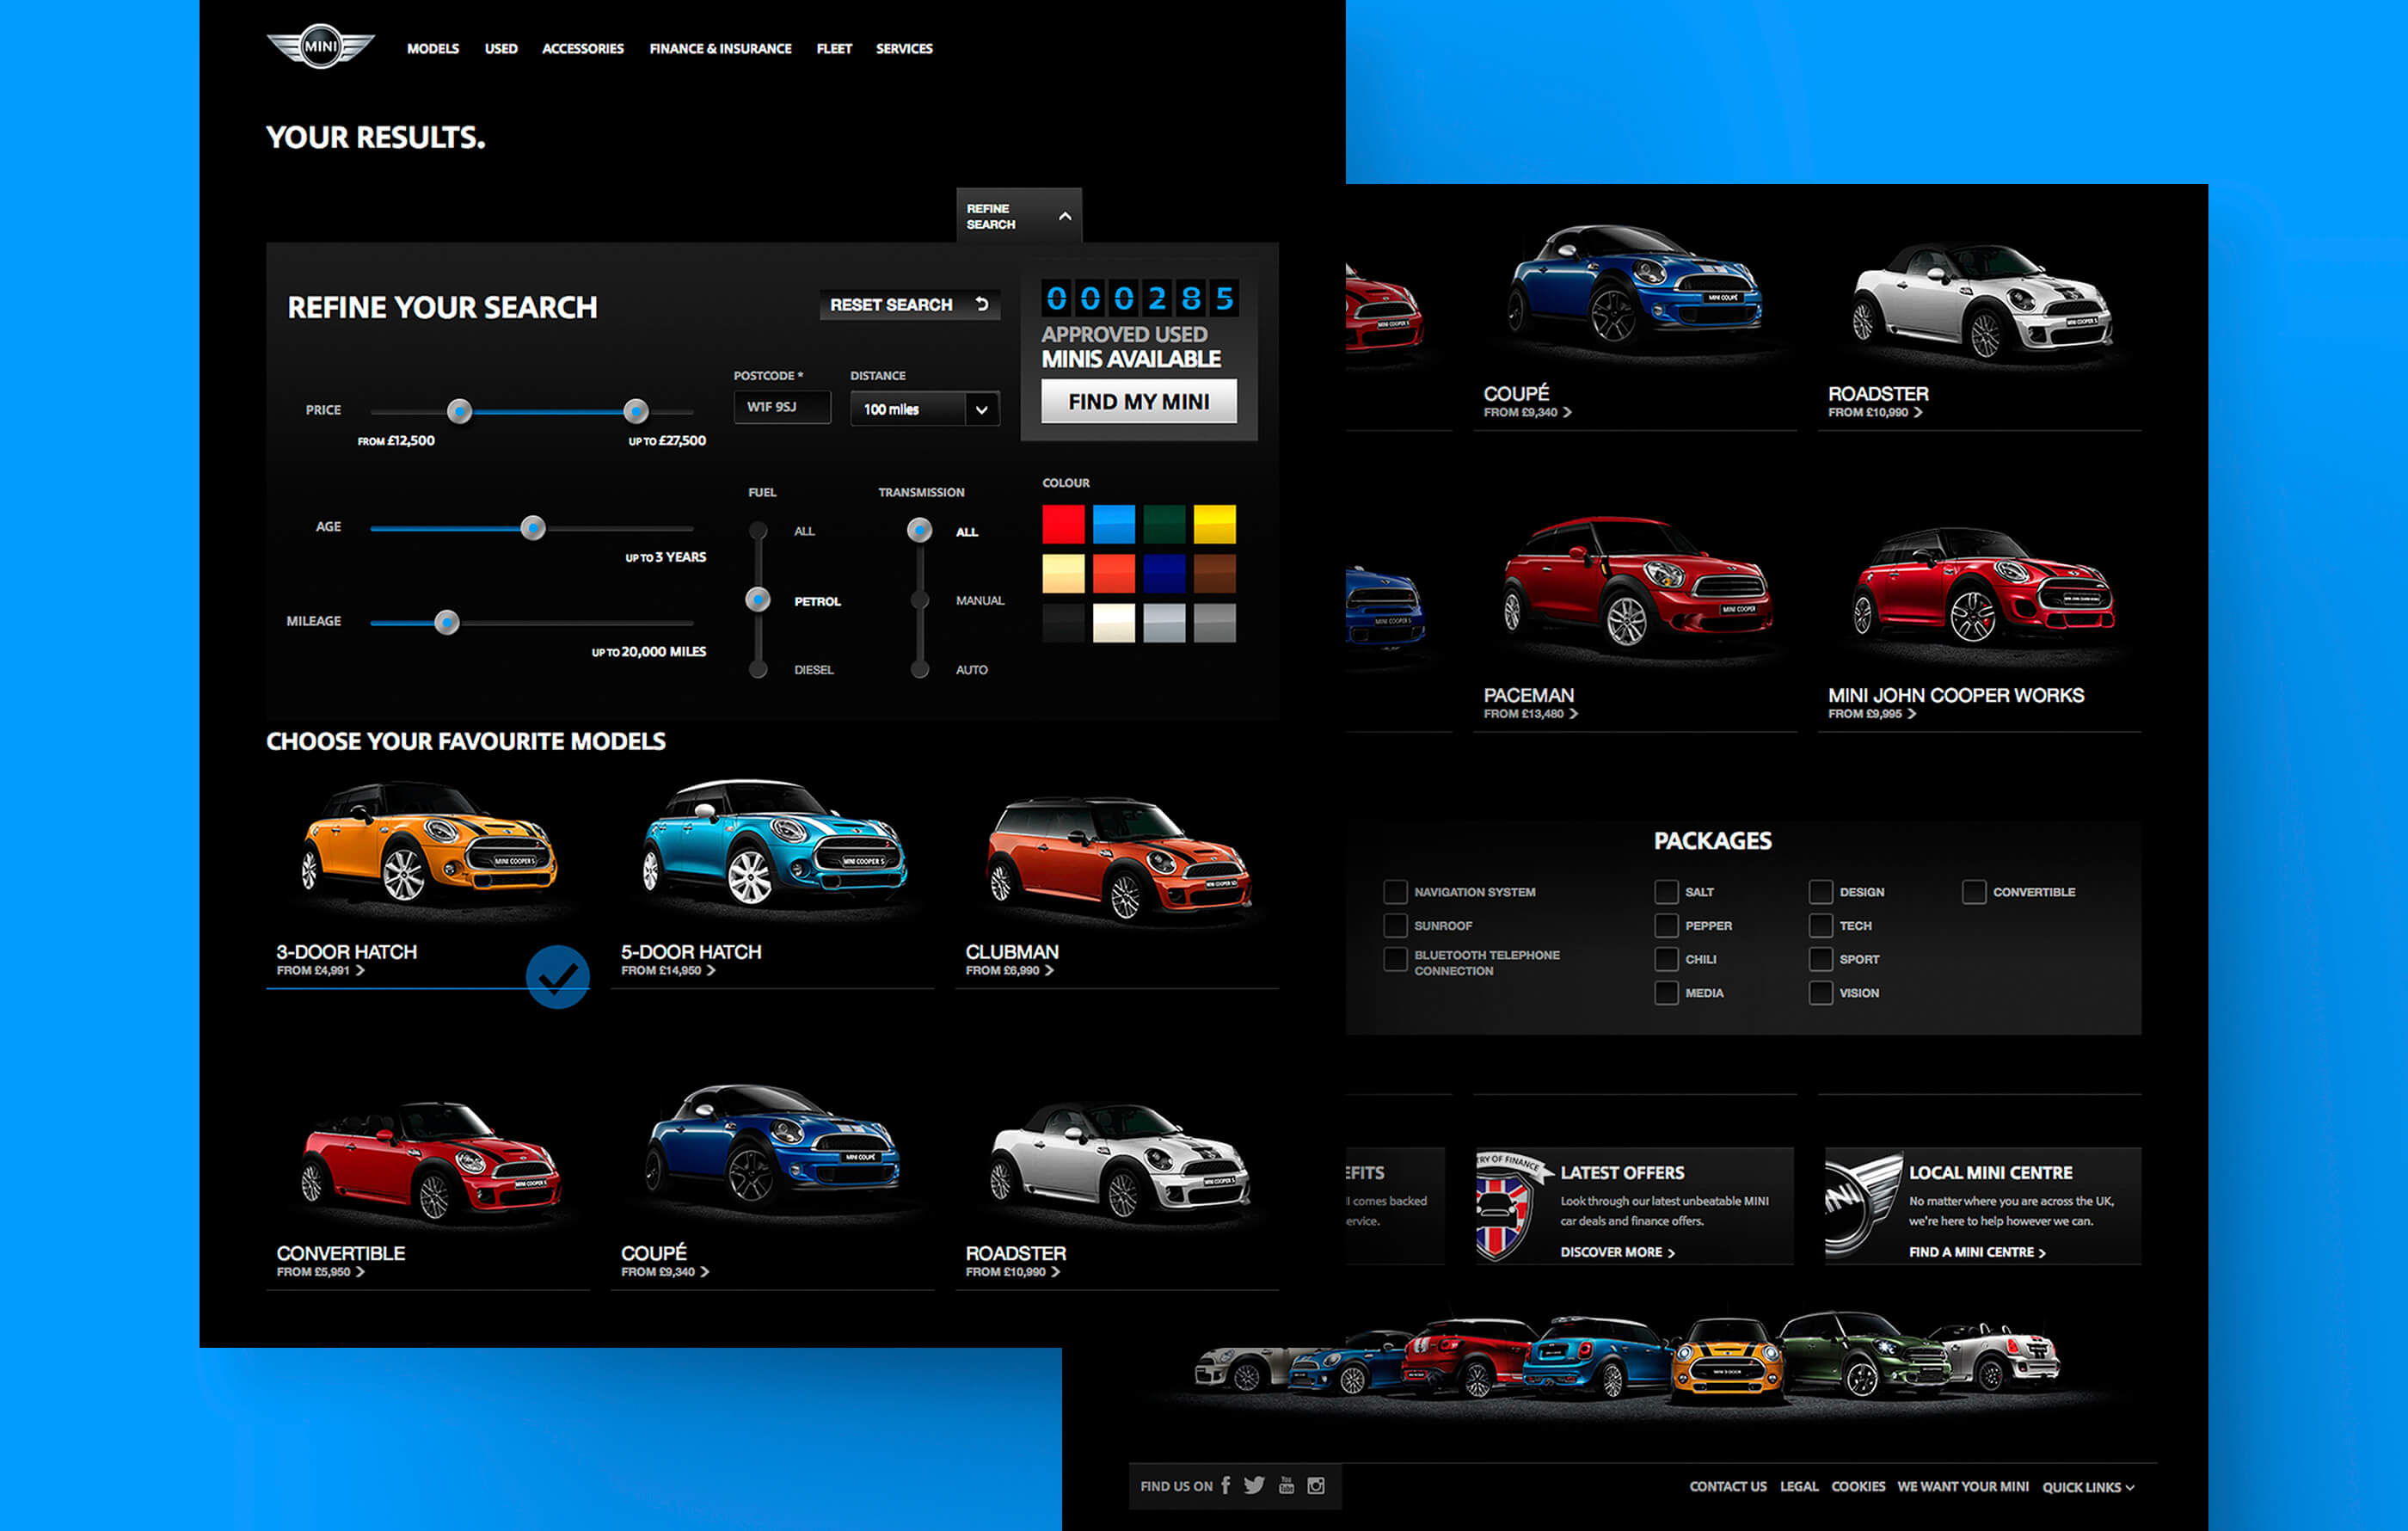 Final render of the BMW Mini vehicle results page and user search options on a desktop